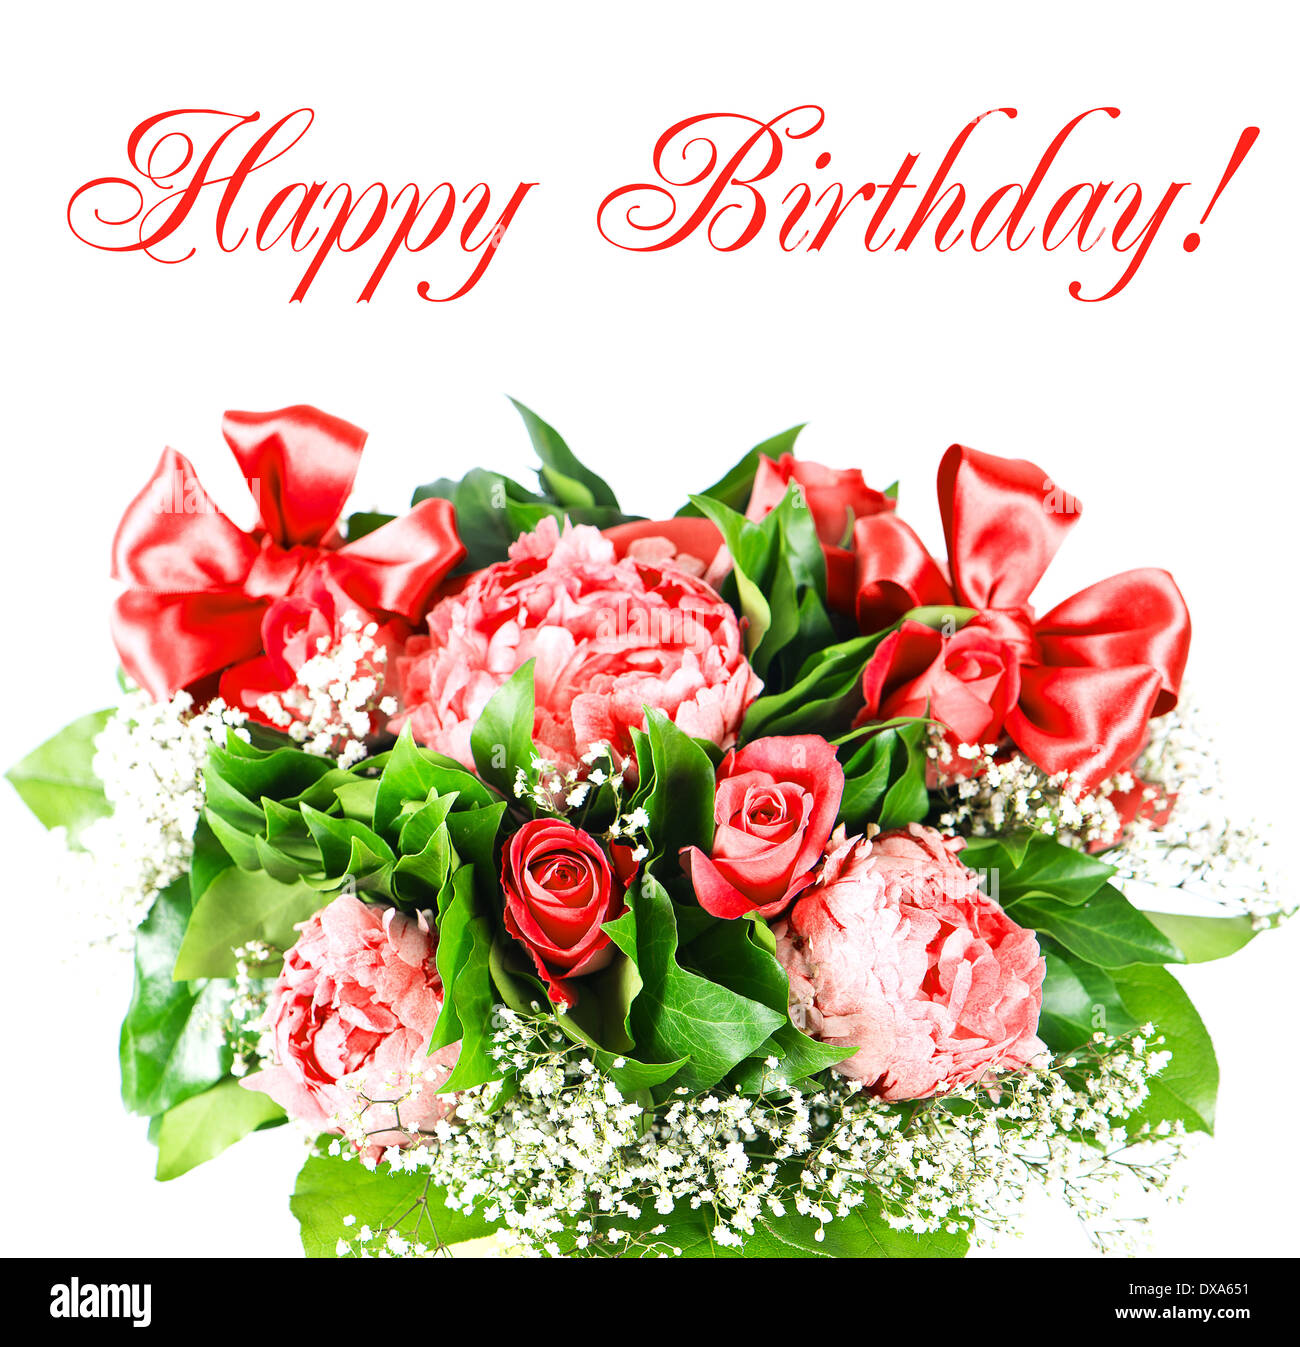 Happy birthday card concept peony and roses flowers stock photo happy birthday card concept peony and roses flowers kristyandbryce Gallery